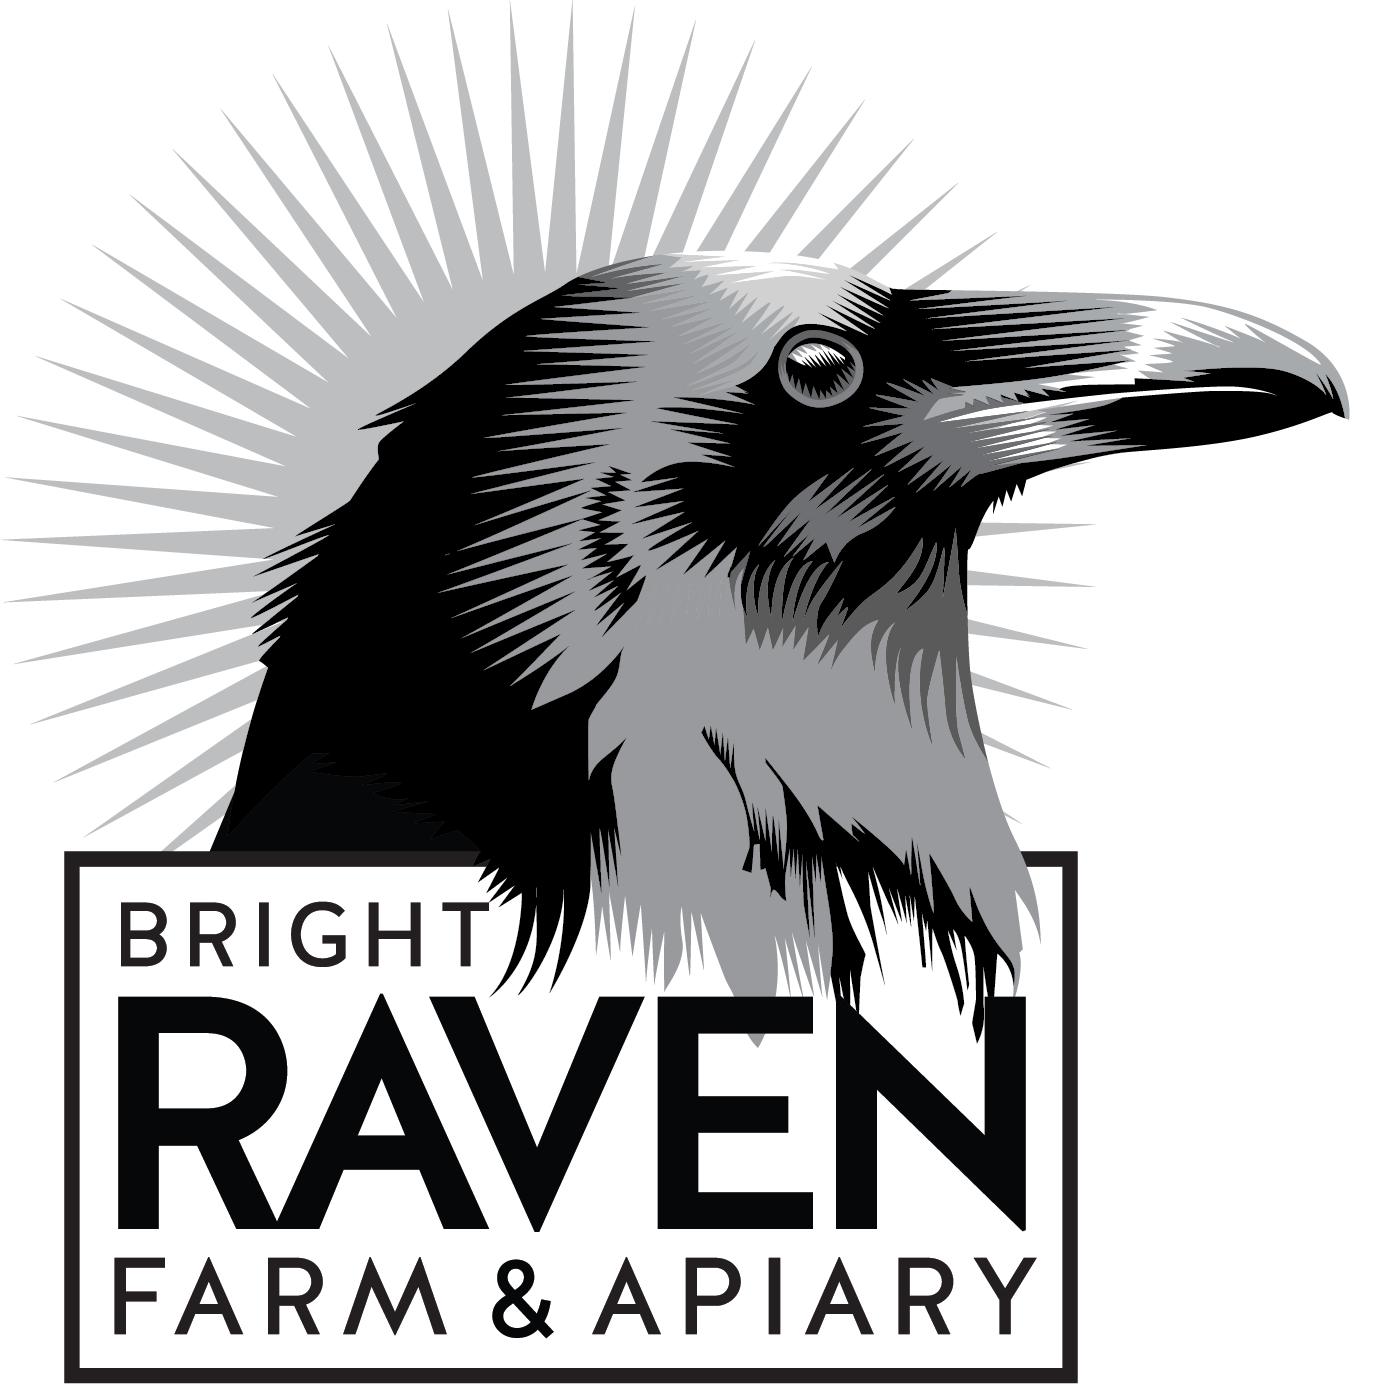 Bright Raven Farm & Apiary